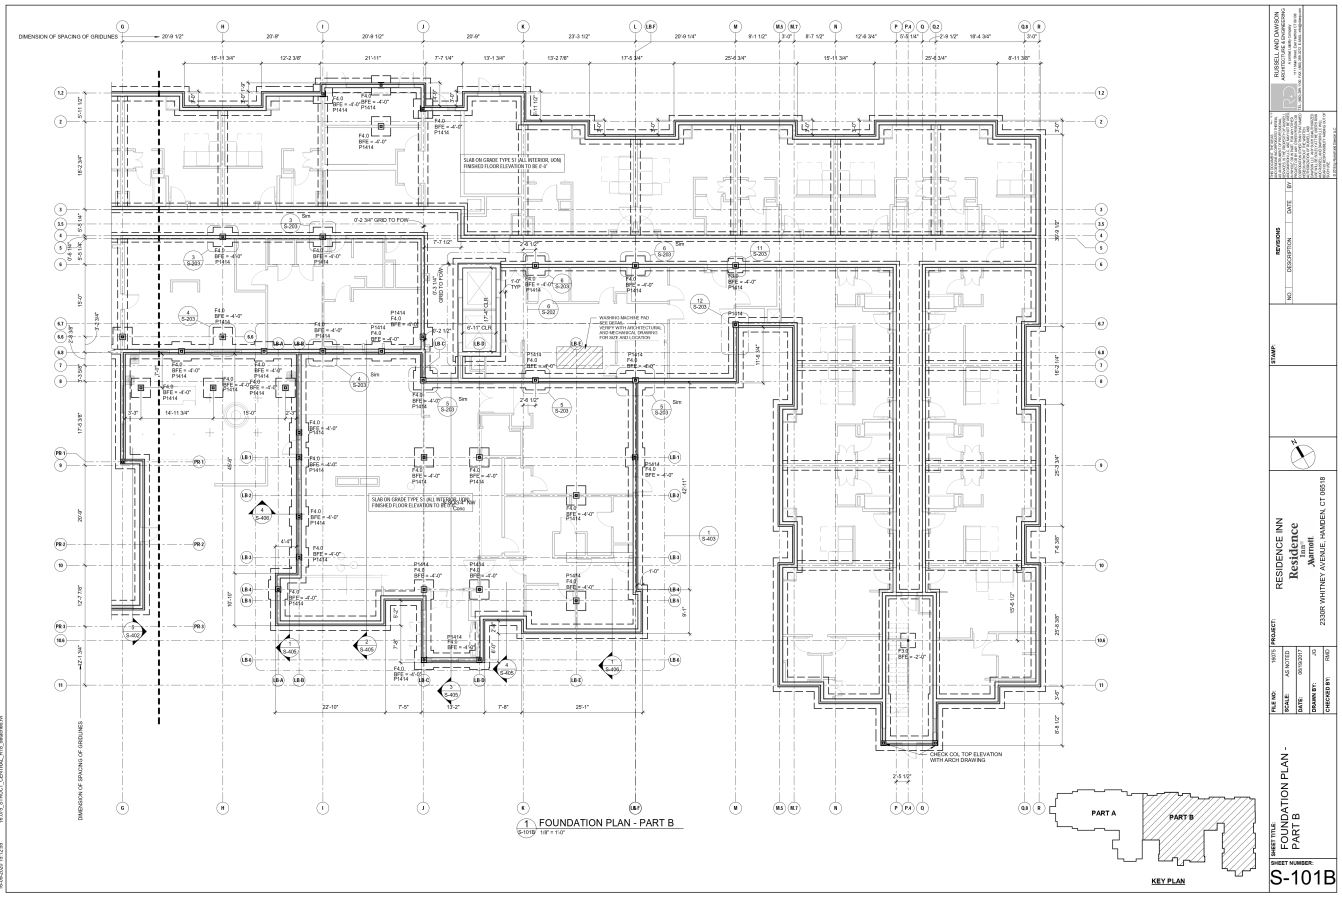 Structural- Foundation Plan